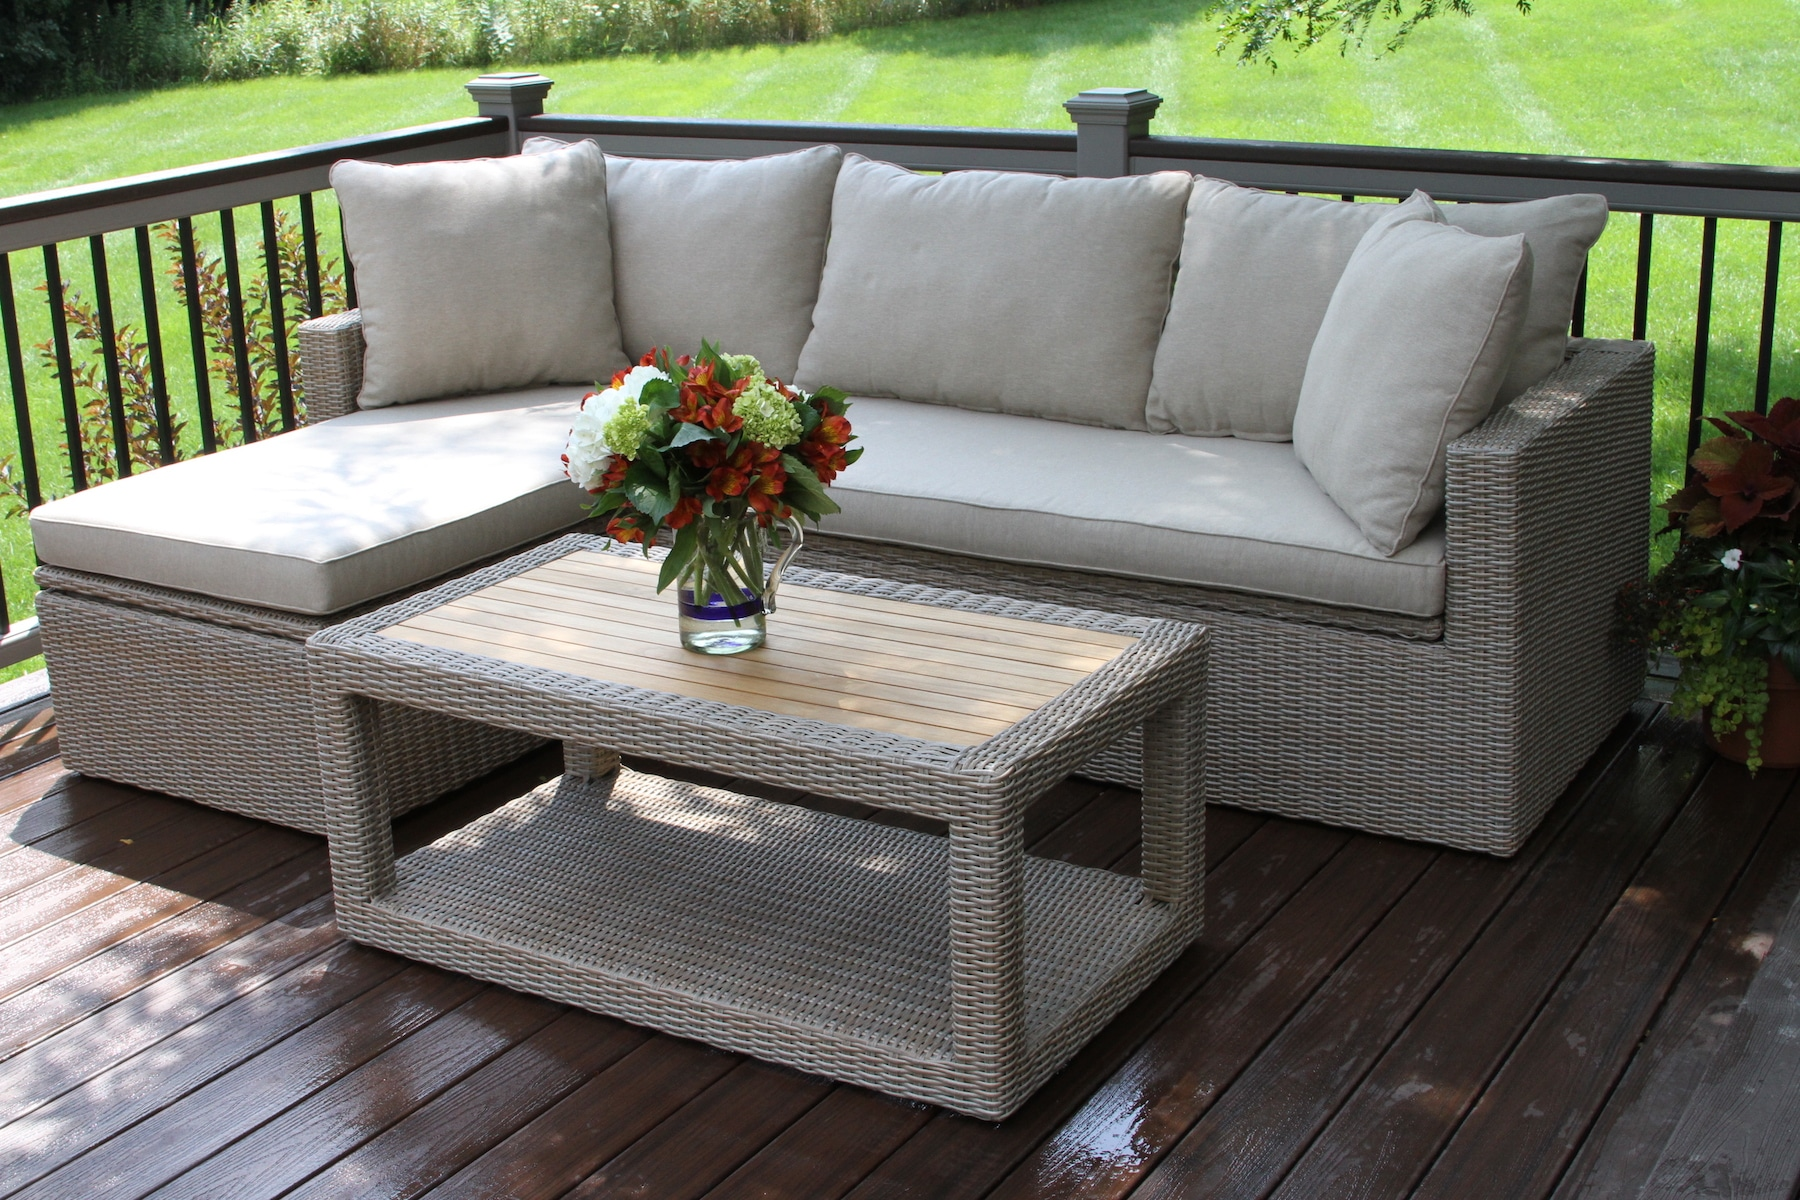 teak wicker furniture collection from outdoor interiors storage accent patio table ash sectional sofa set with waterproof travertine coffee marble console target mosaic top very